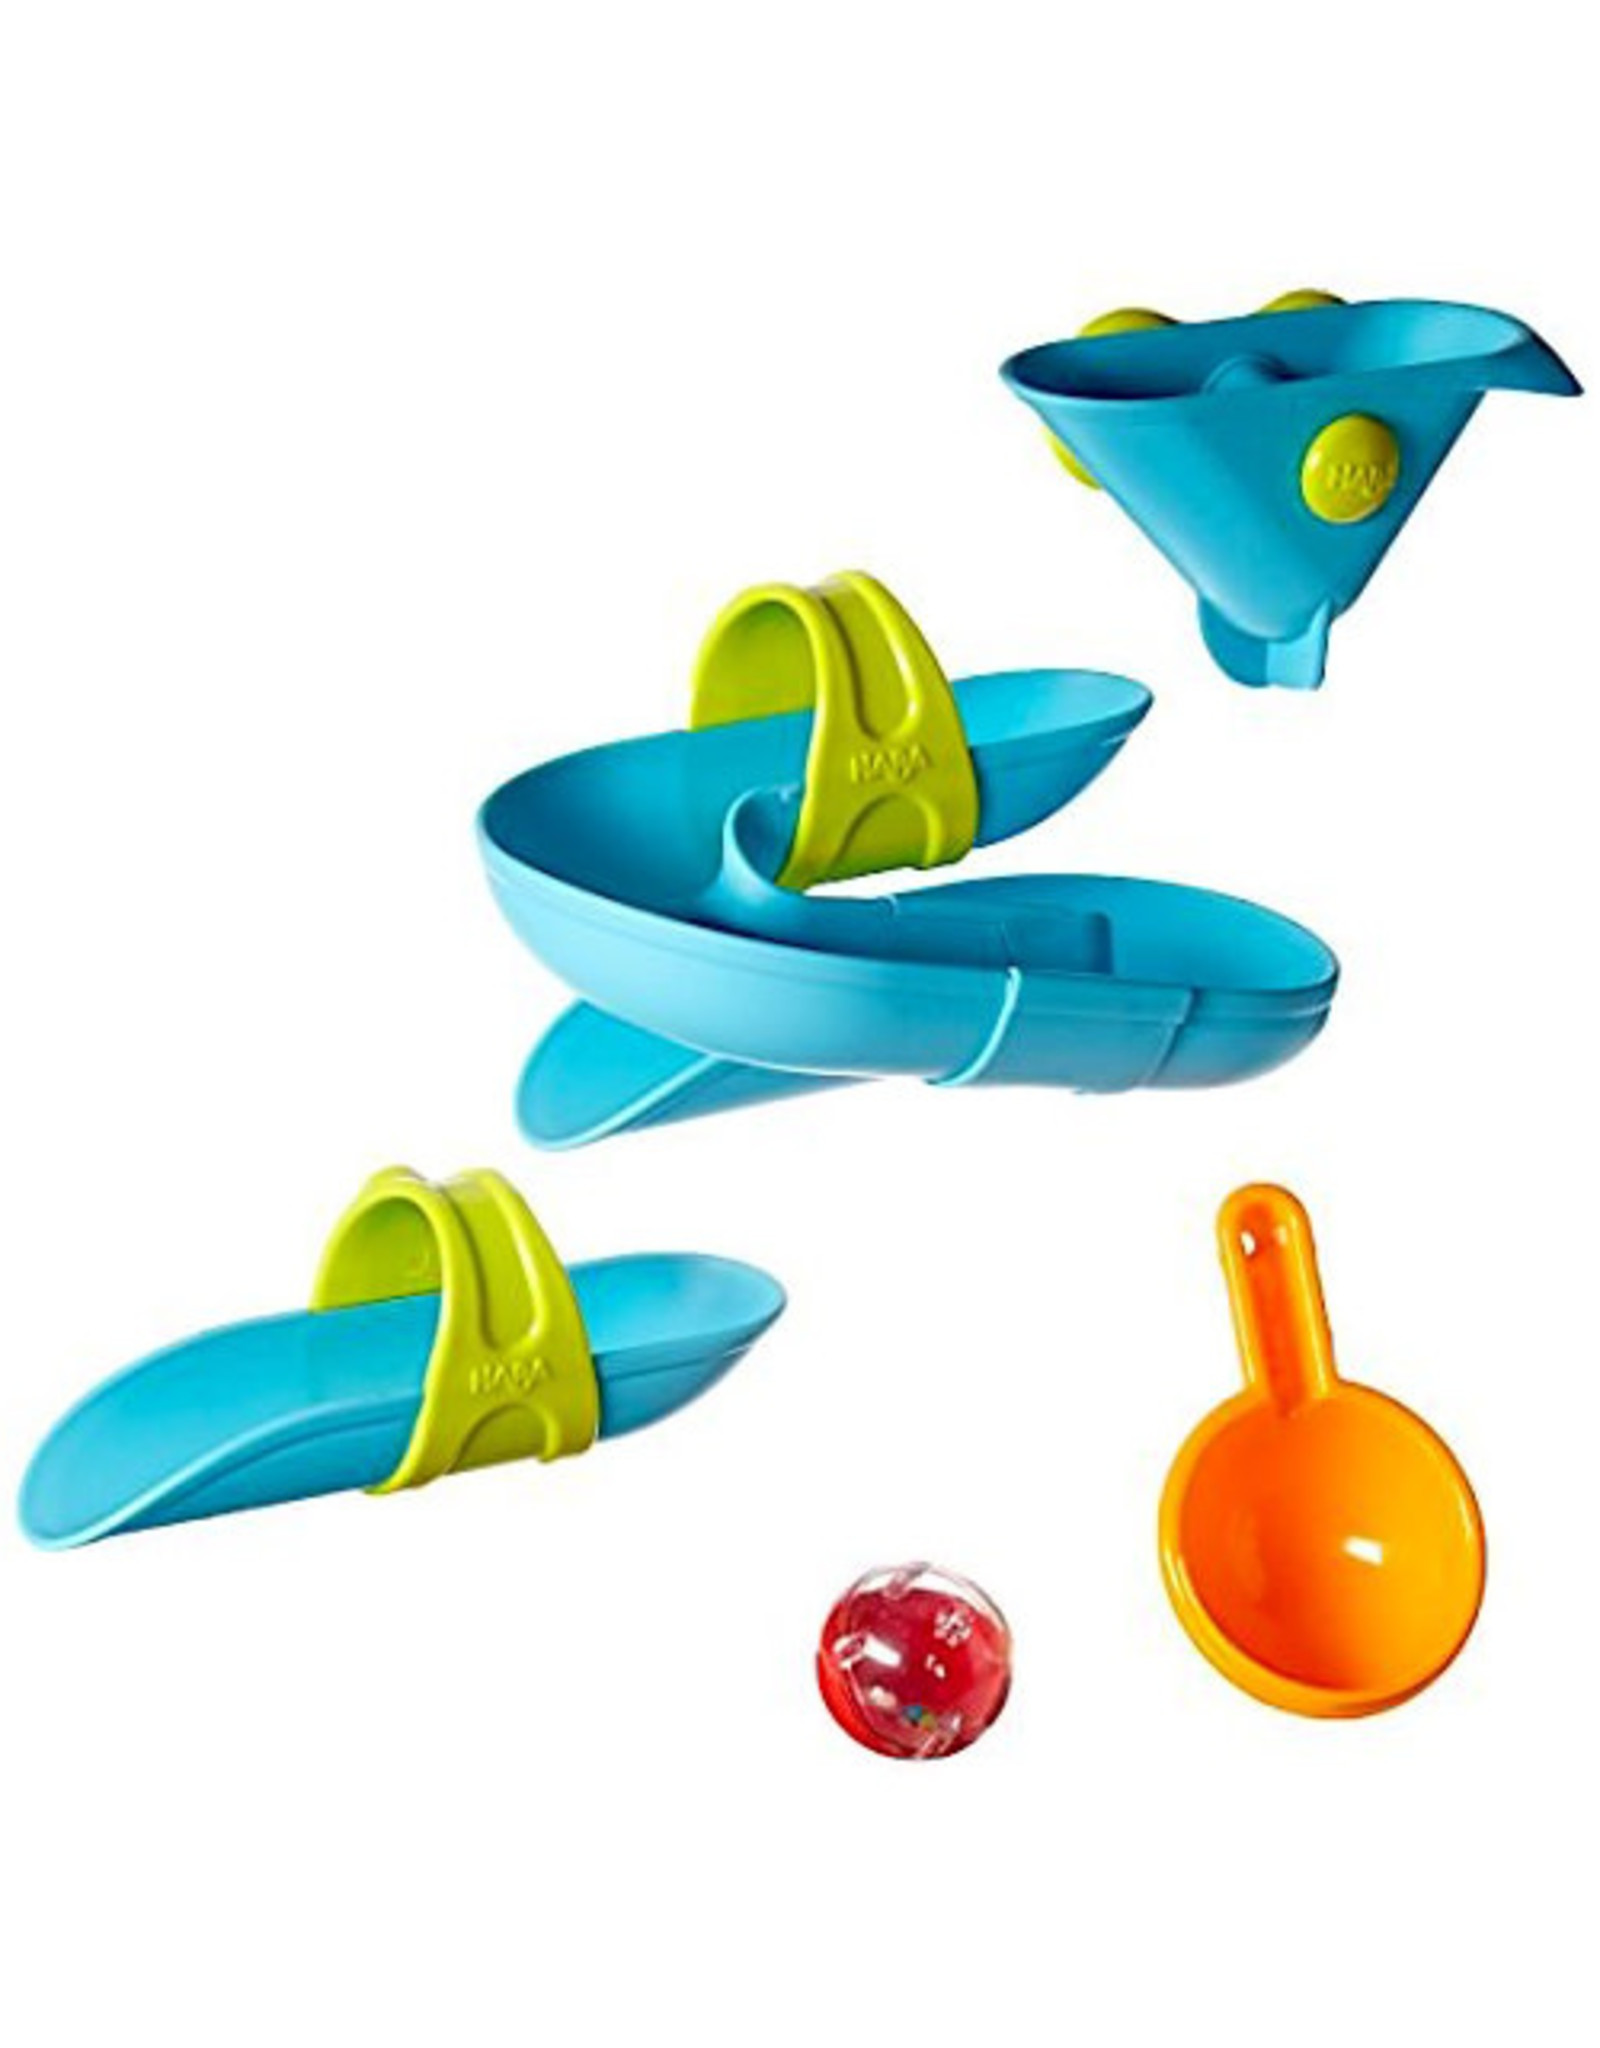 HABA Bathtub Ball Track Set